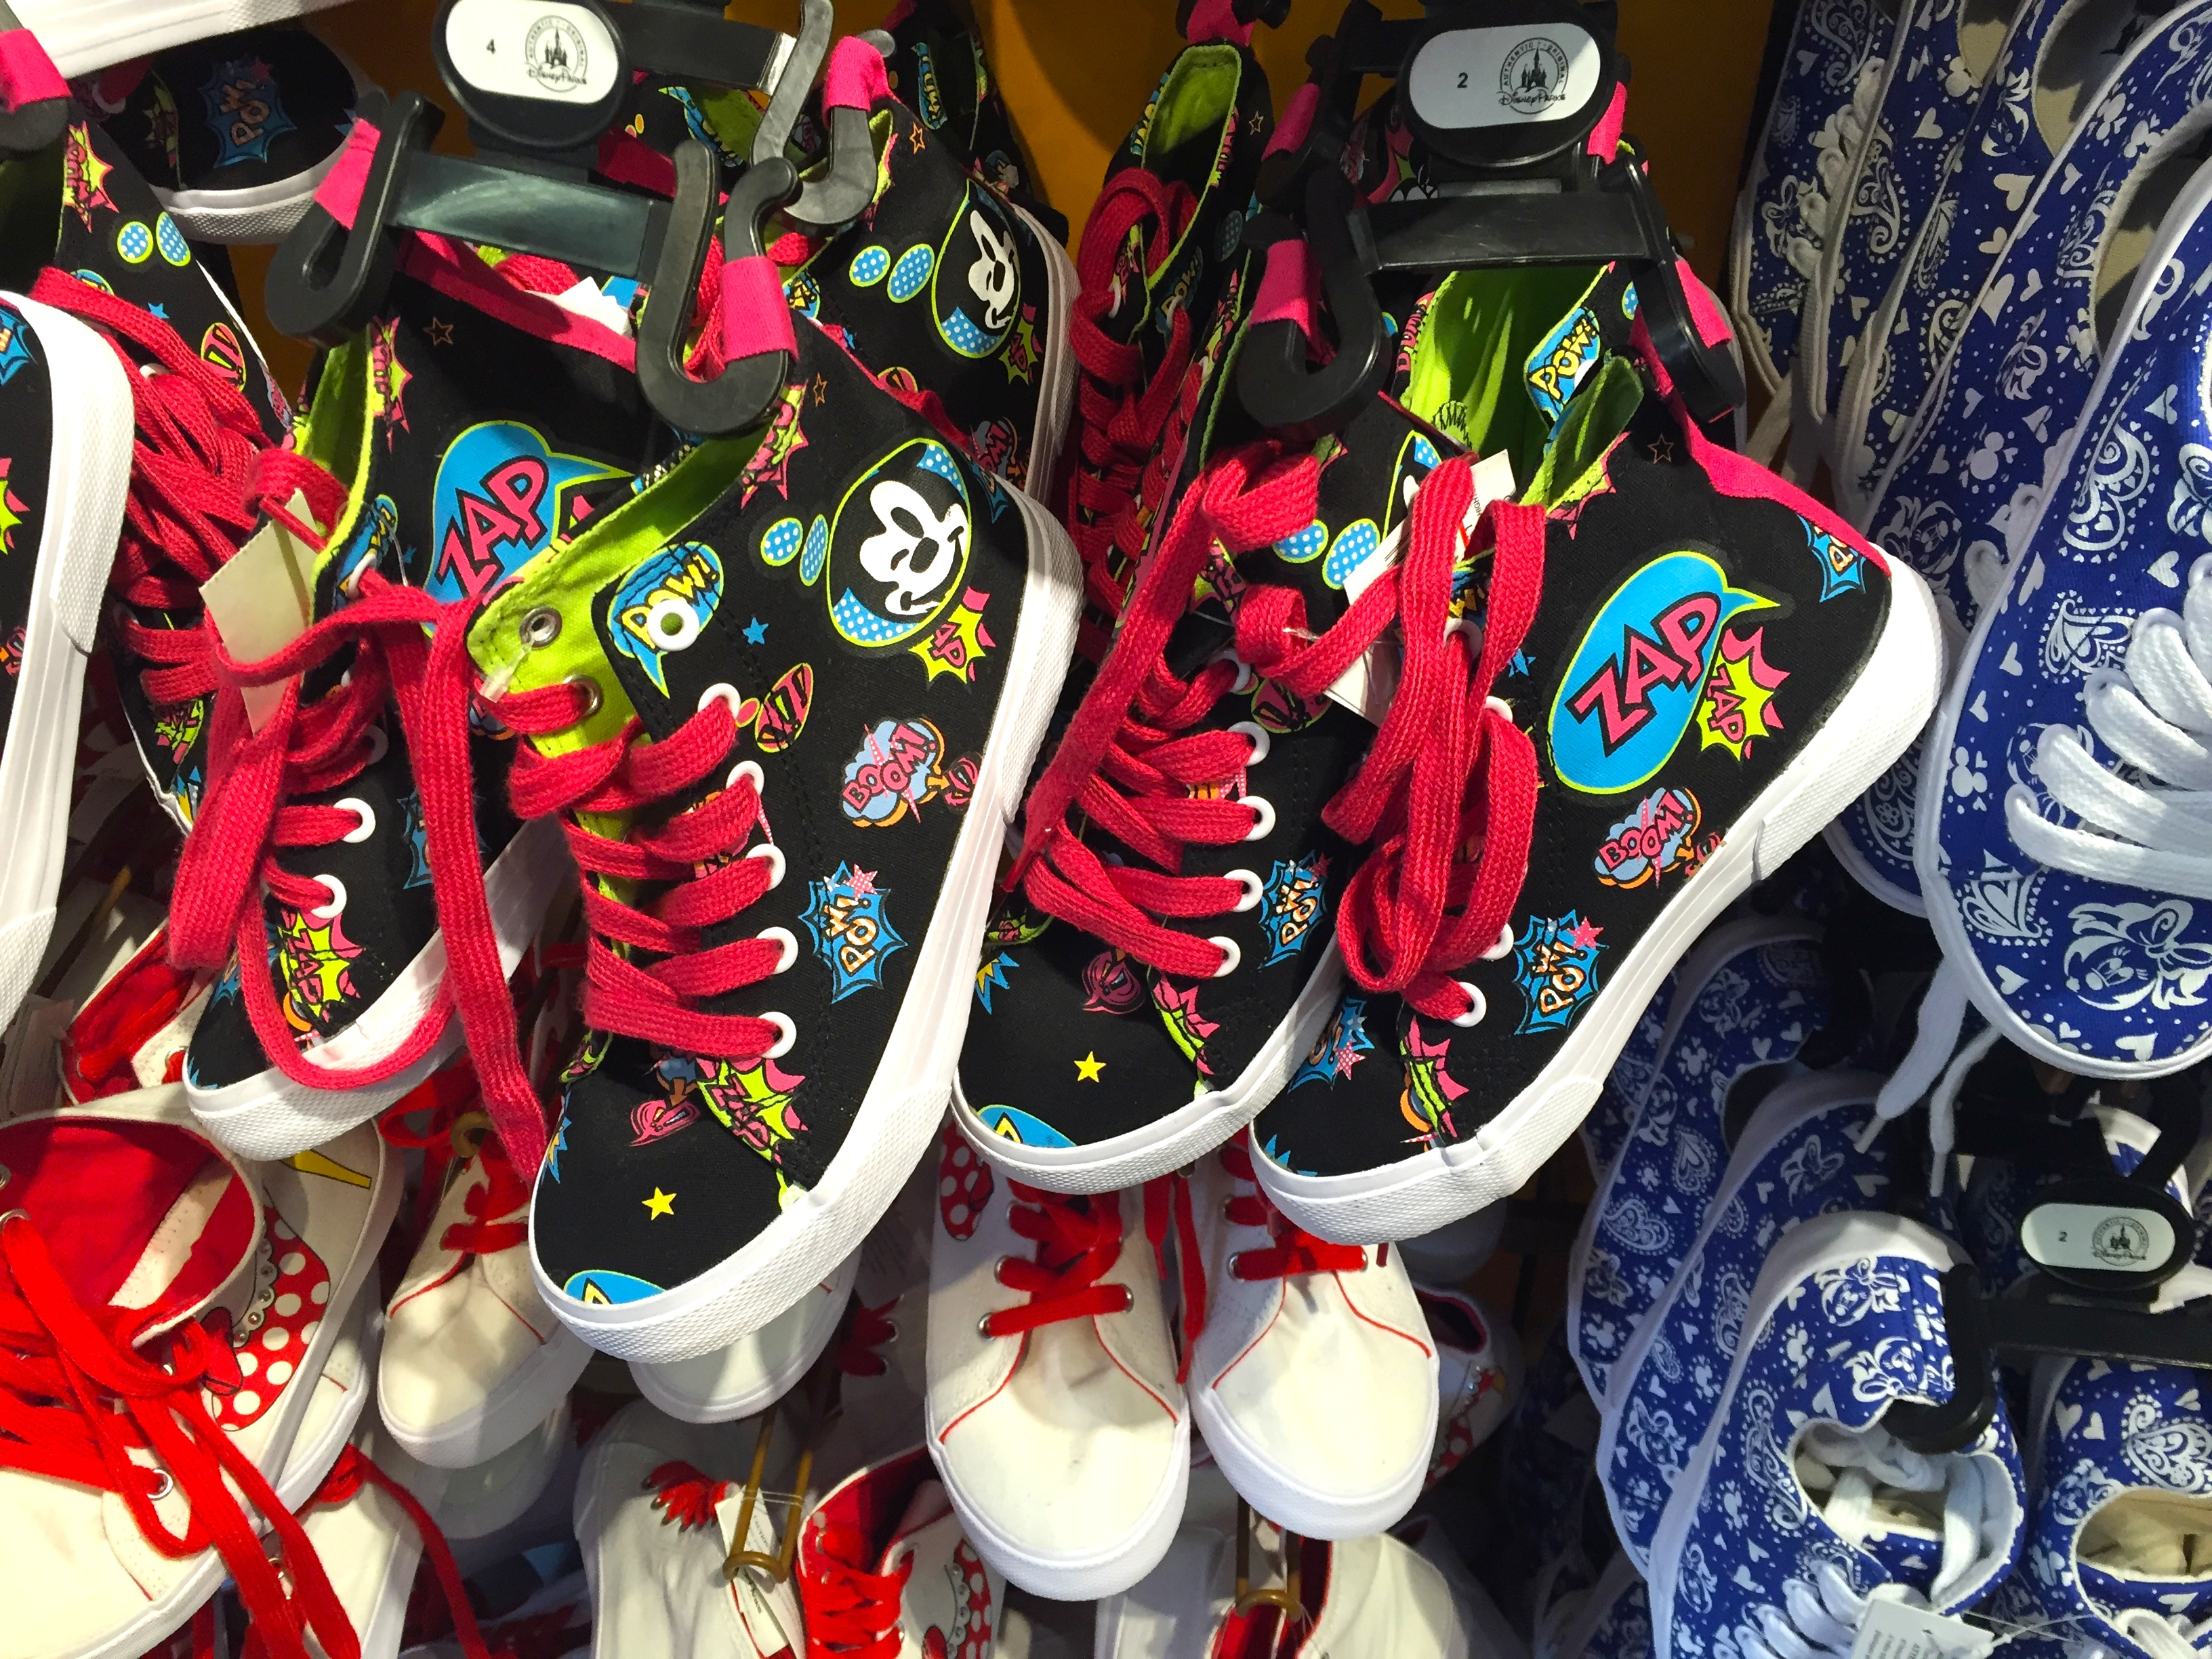 Sir I Wanna Buy These Shoes Movie